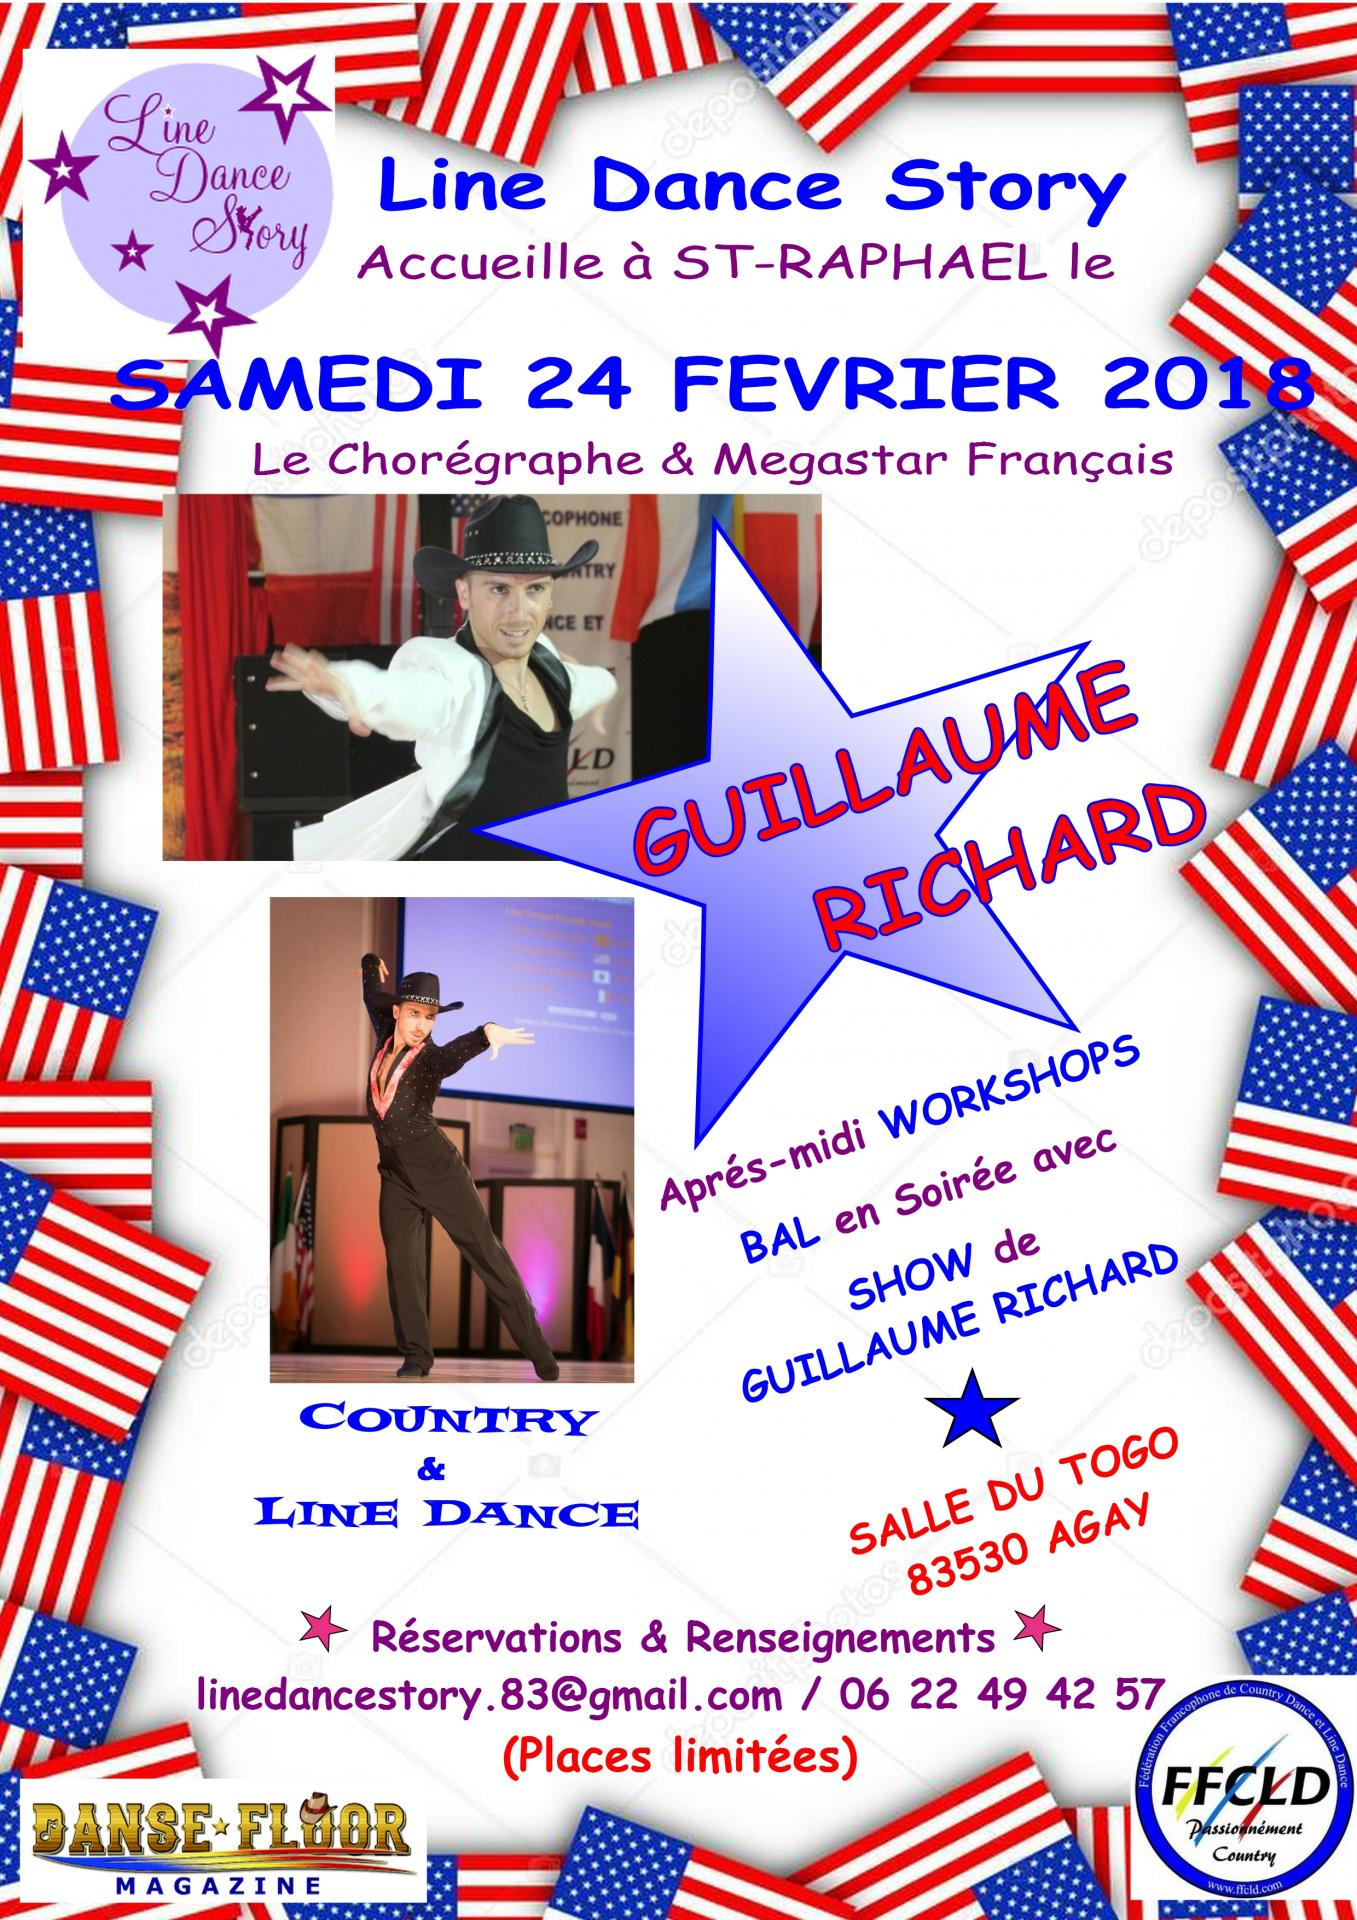 Guillaume richard 24 02 2018